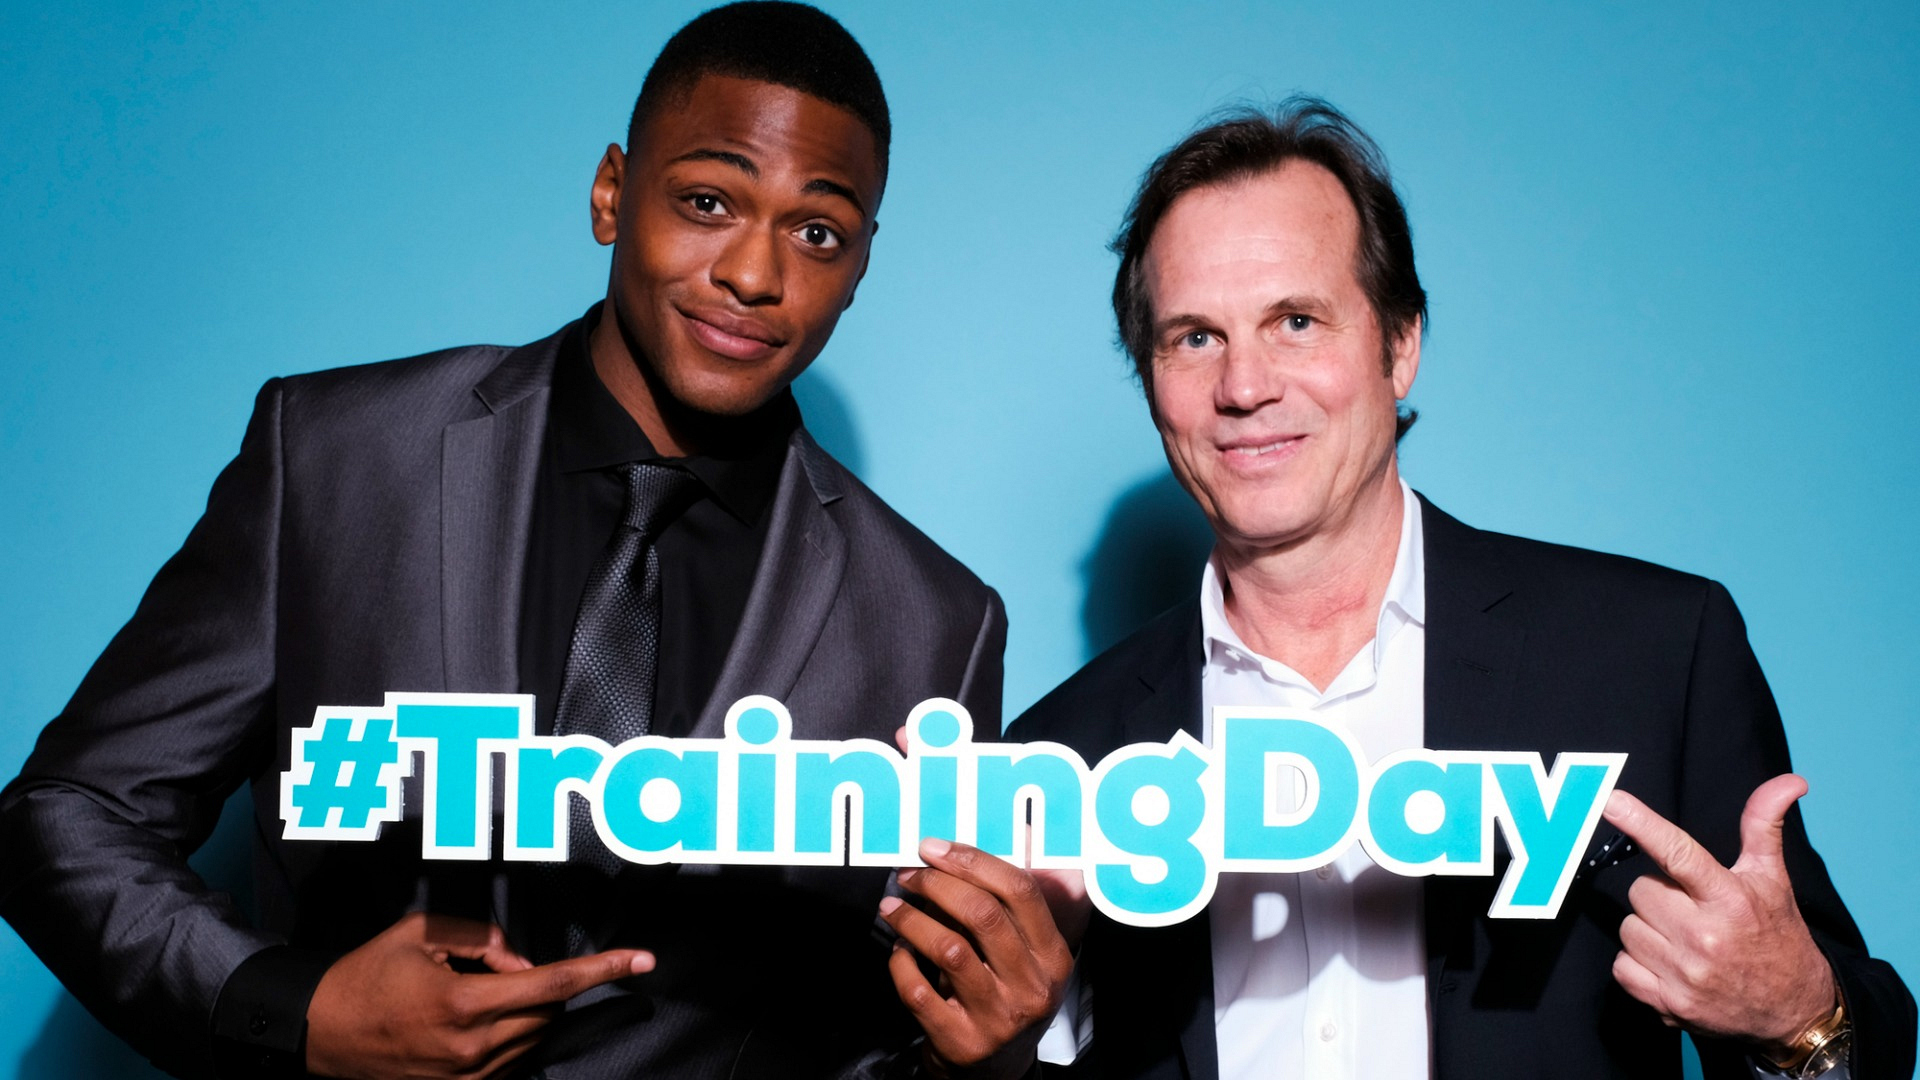 Justin Cornwell and Bill Paxton from Training Day